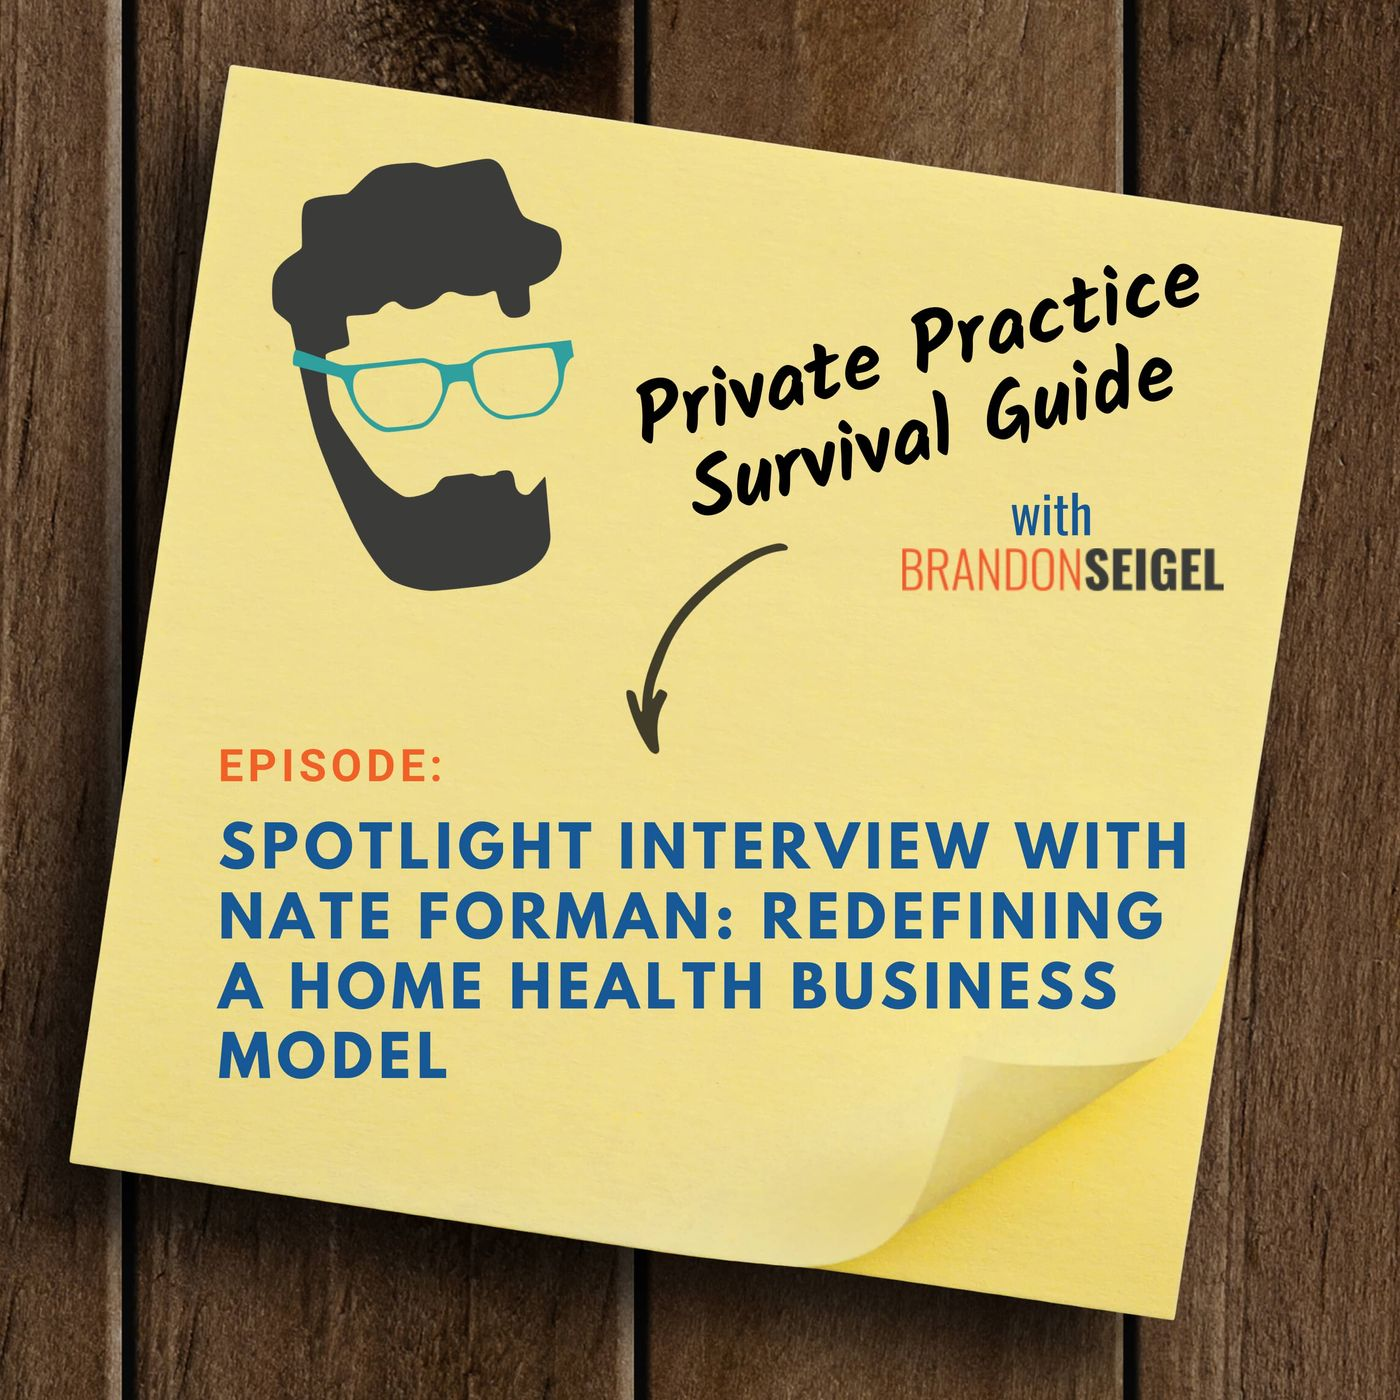 Spotlight Interview With Nate Forman: Redefining A Home Health Business Model